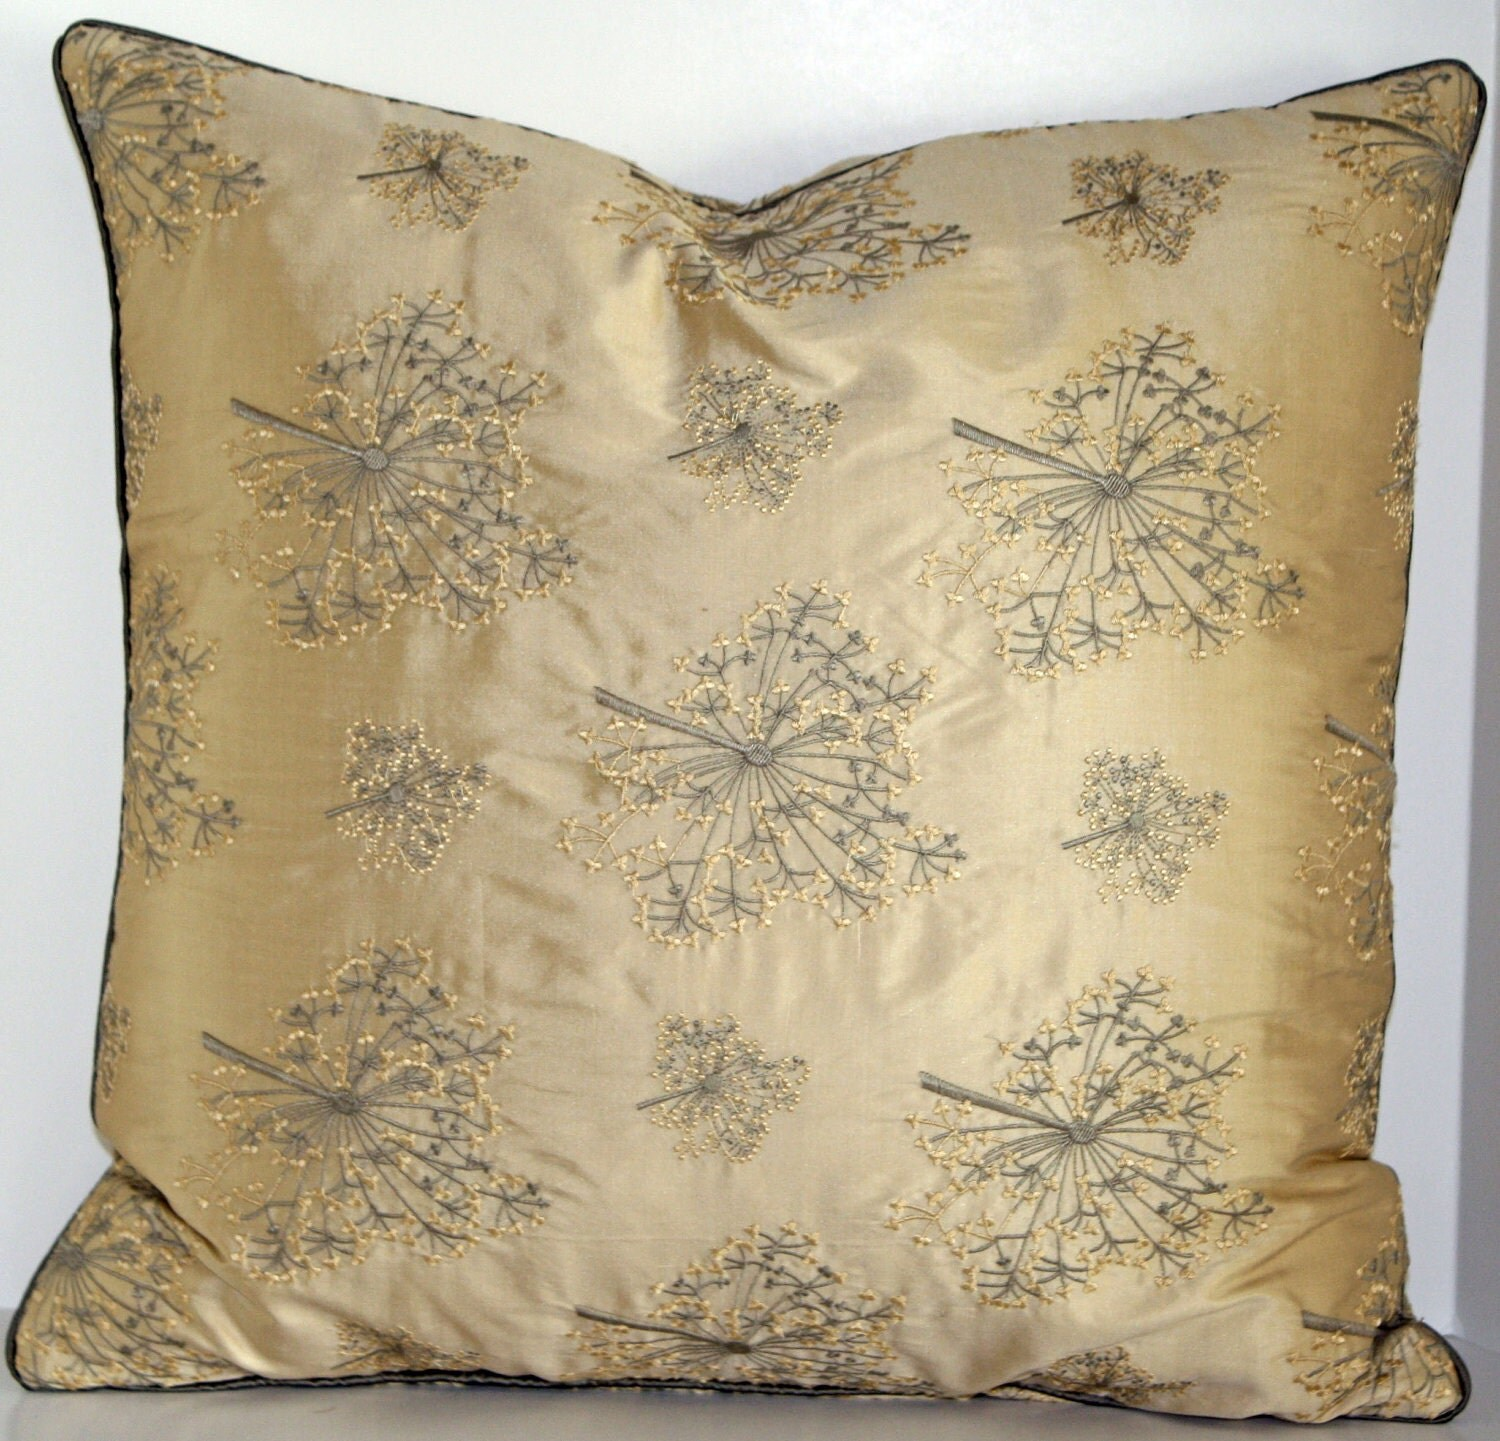 Decorative Pillow Cover - Mimosa/Beige - 18 inch - Embroidered silk pillow - Creamy Beige - Gray Taupe - AbbysHome